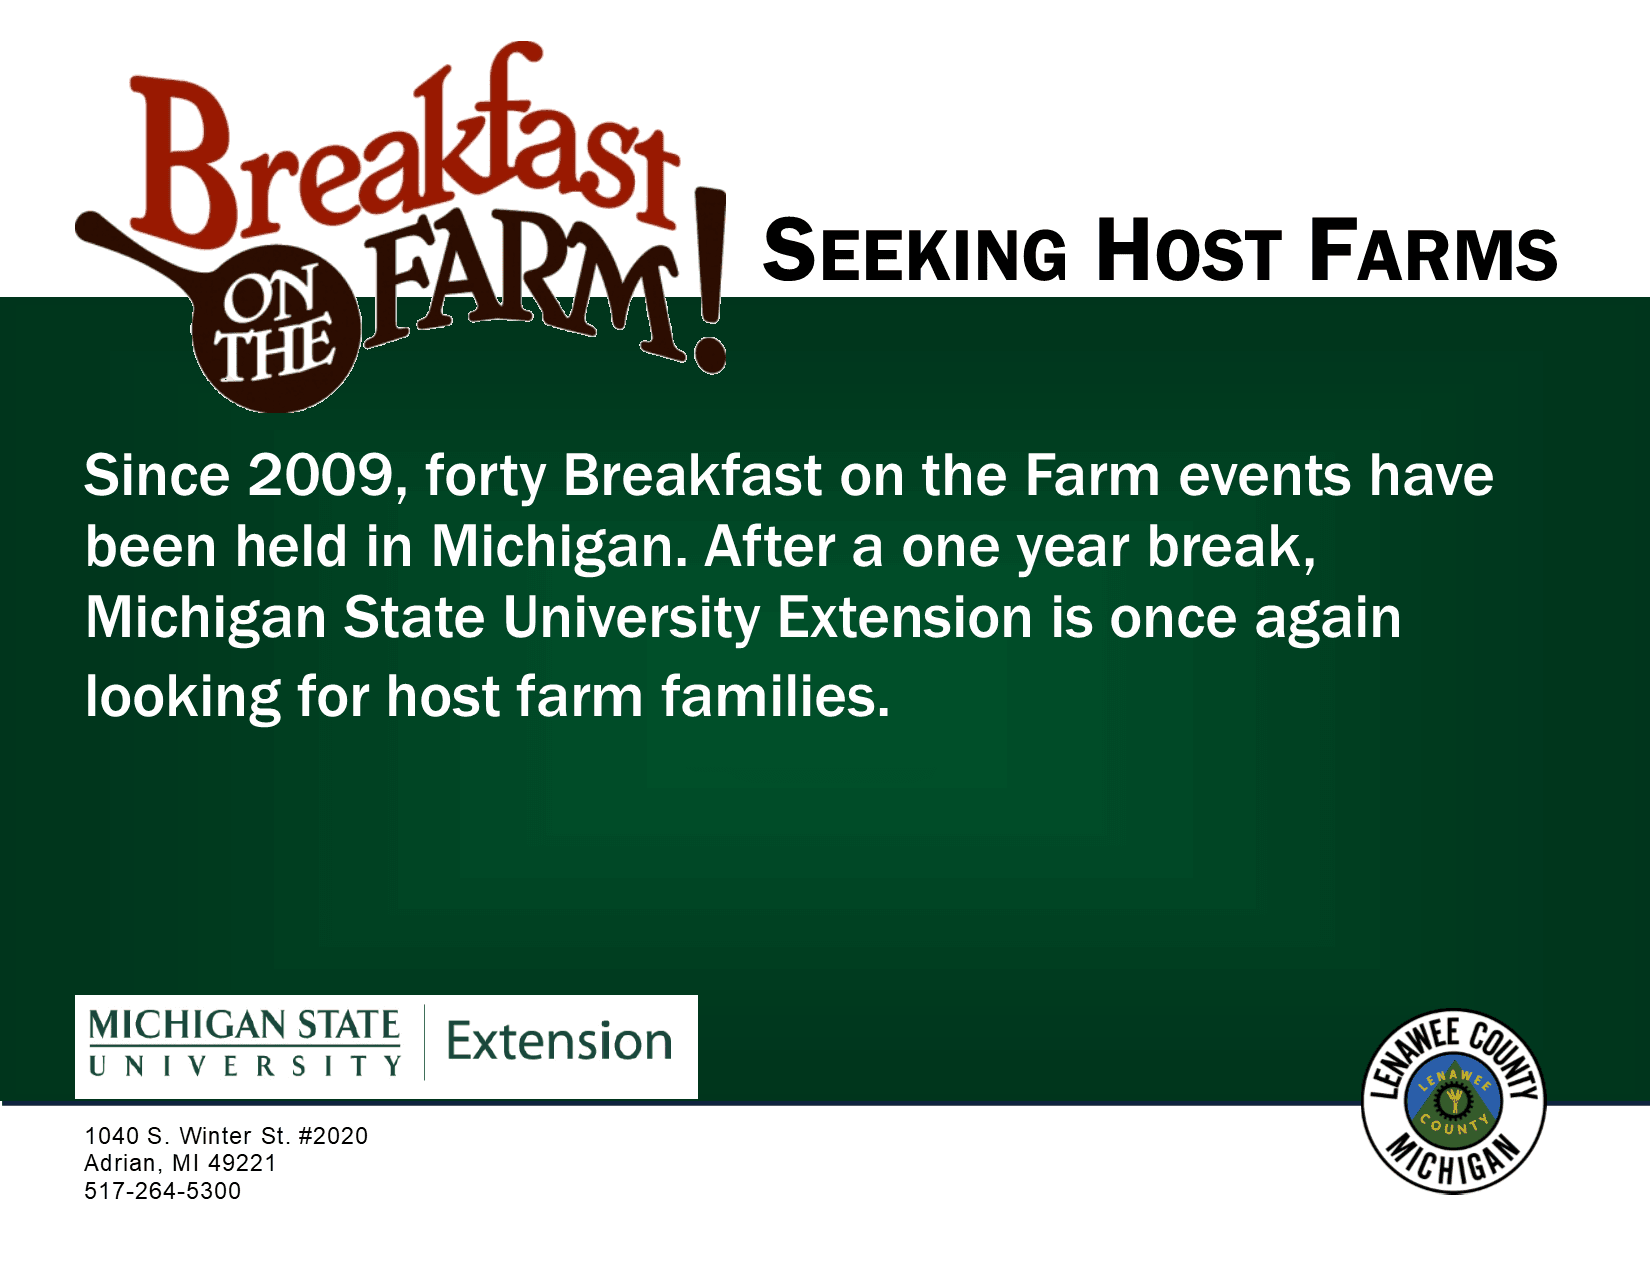 Breakfast on the farm logo